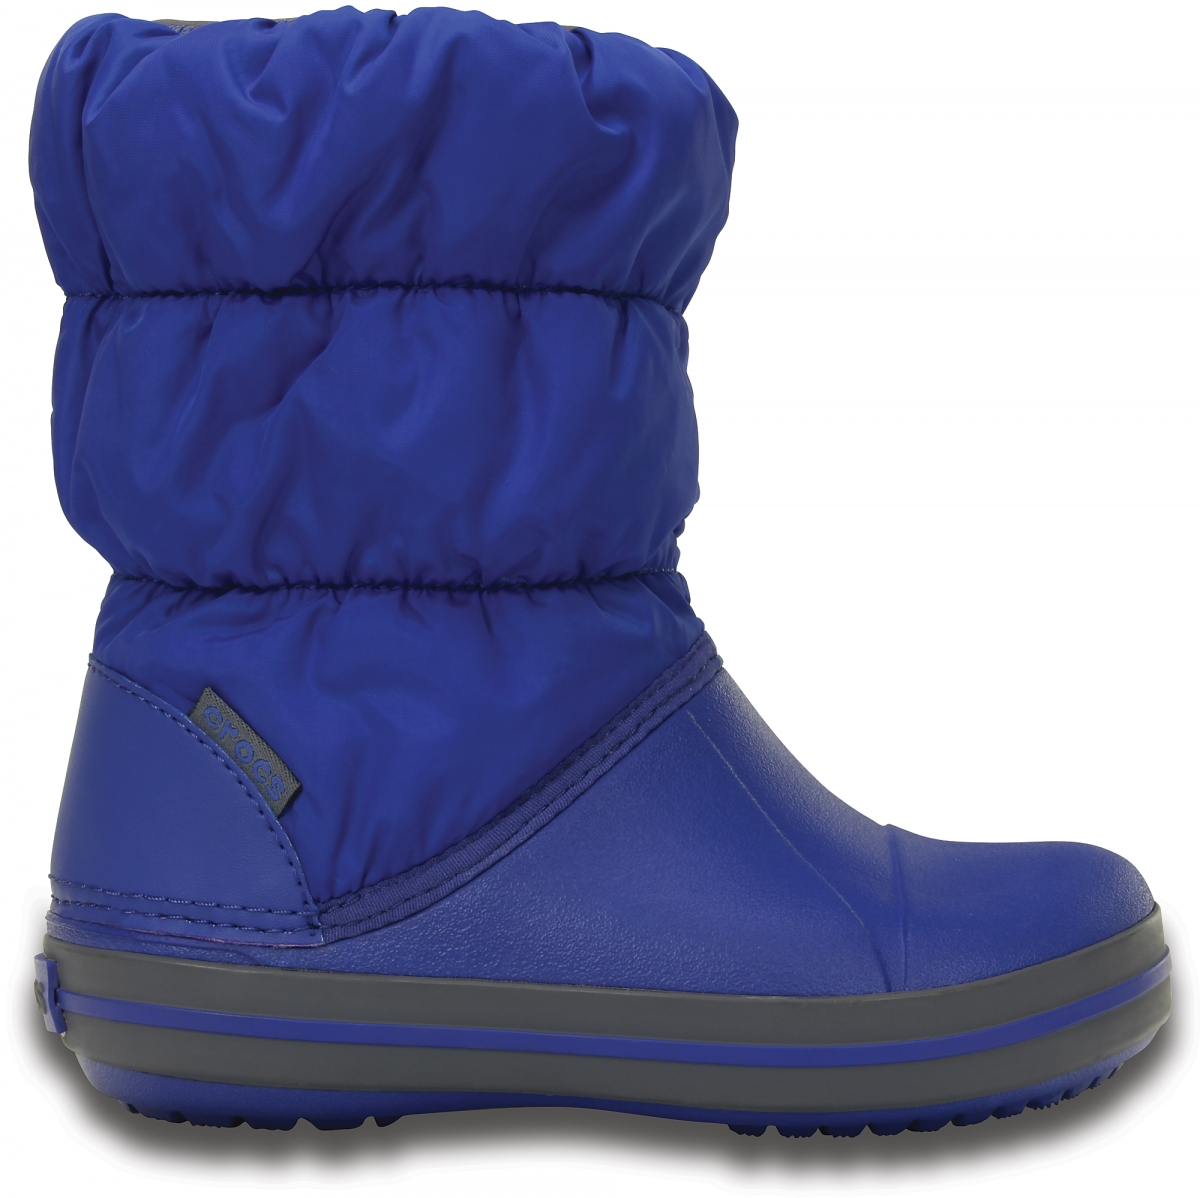 Crocs Winter Puff Boot Kids - Cerulean Blue/Light Grey, C12 (29-30)